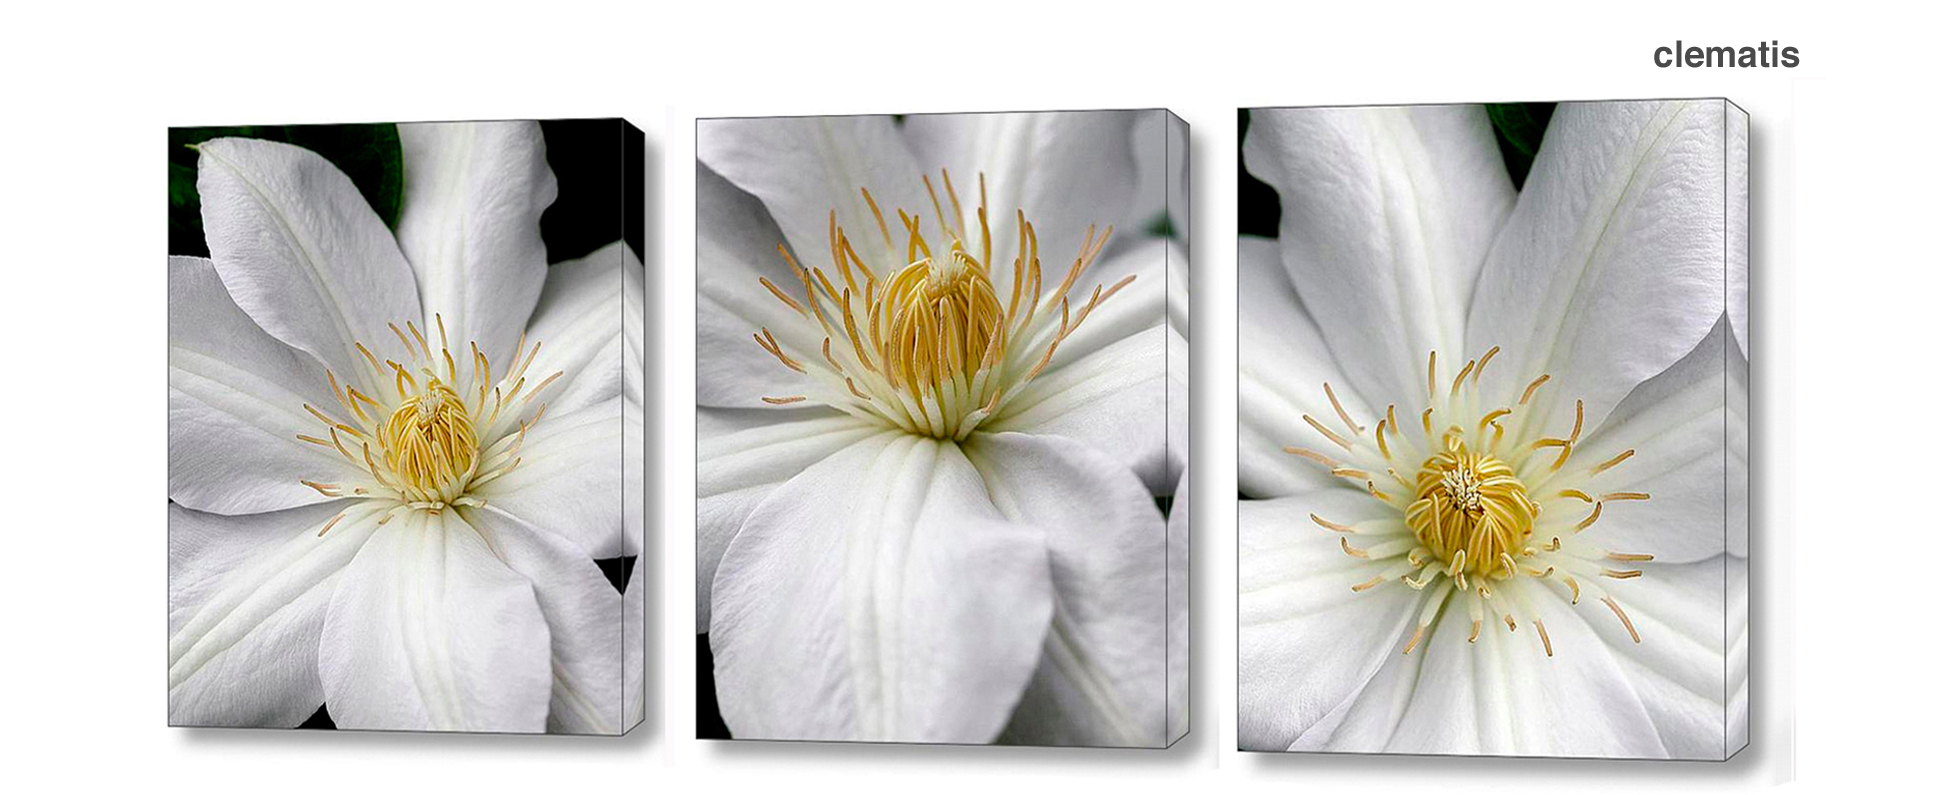 clematis series - Floral Series Wall Decor Macro Photography Matted & Giclée Canvas Prints